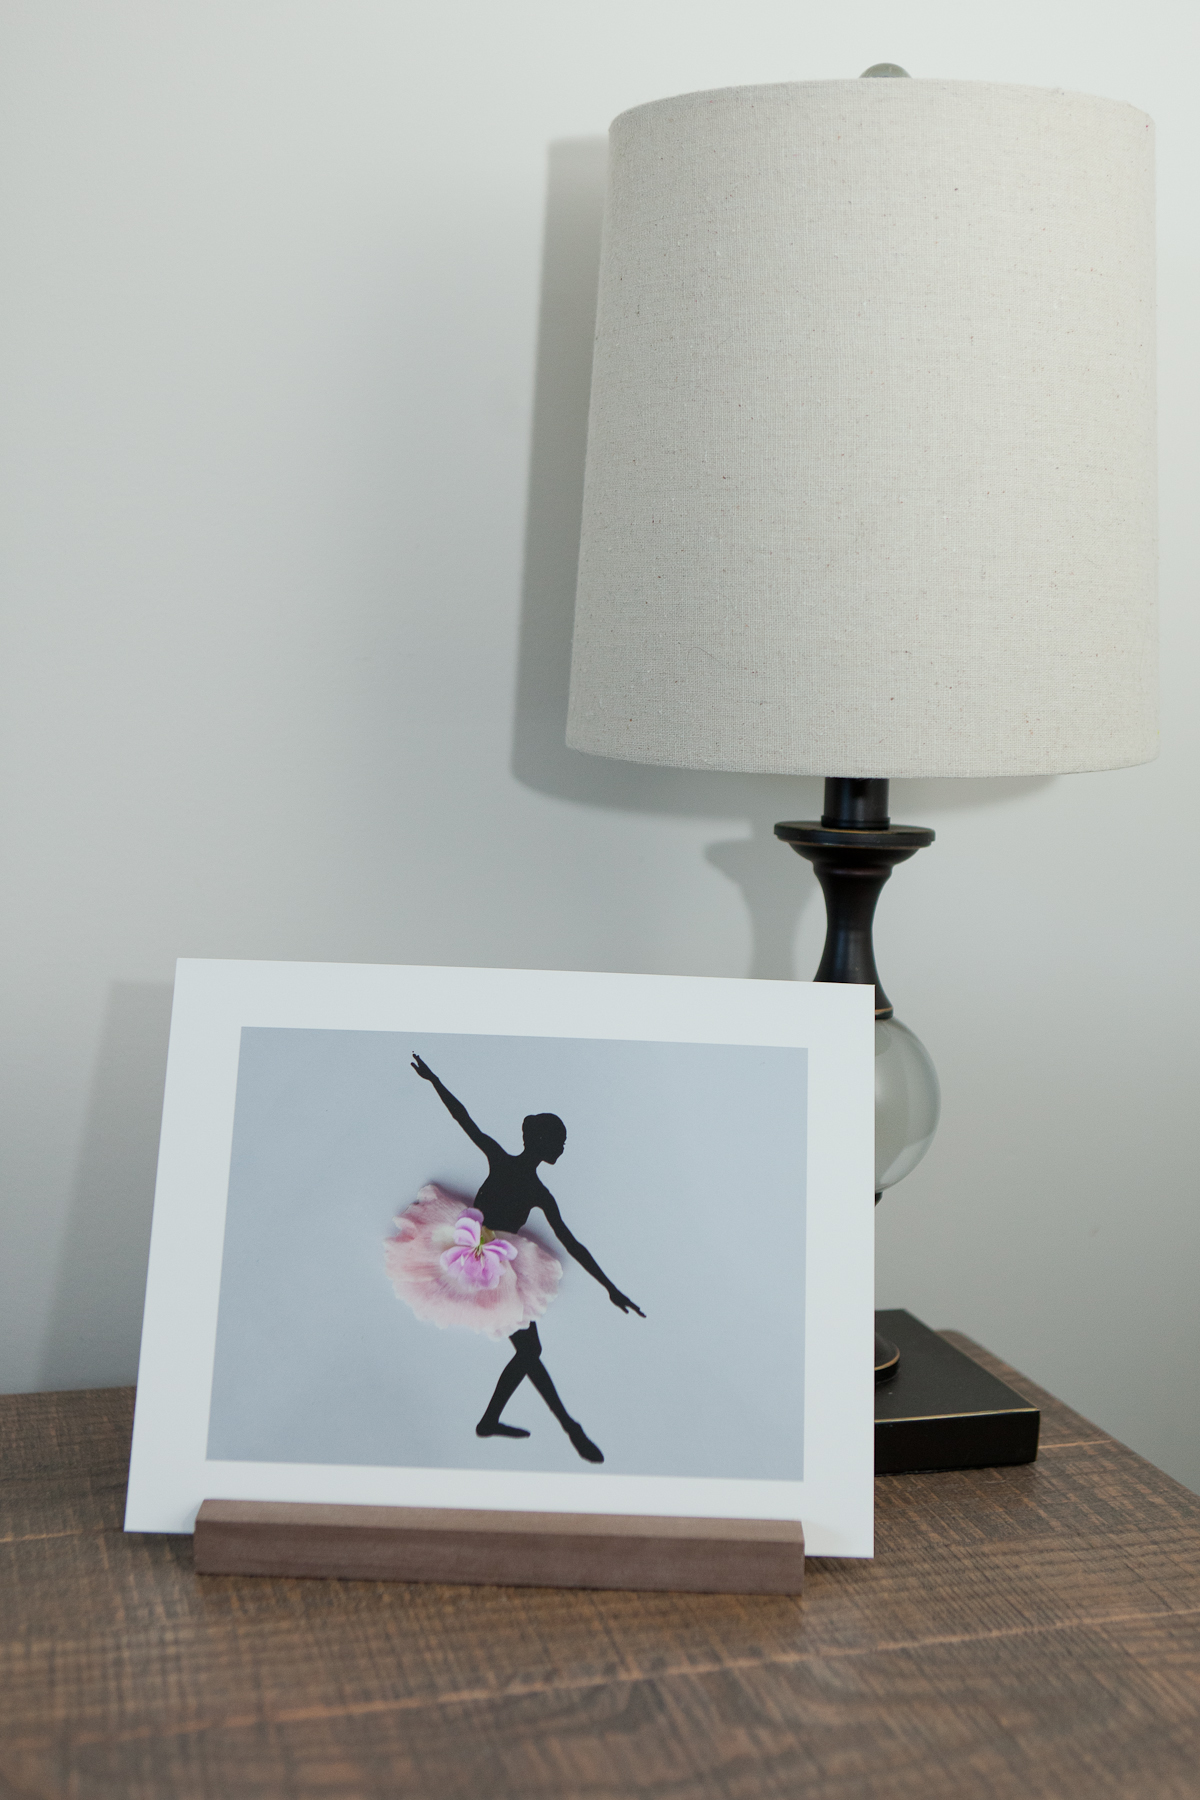 Traditional Ballerina from Floral Dancer Series | IMG_0058.jpg